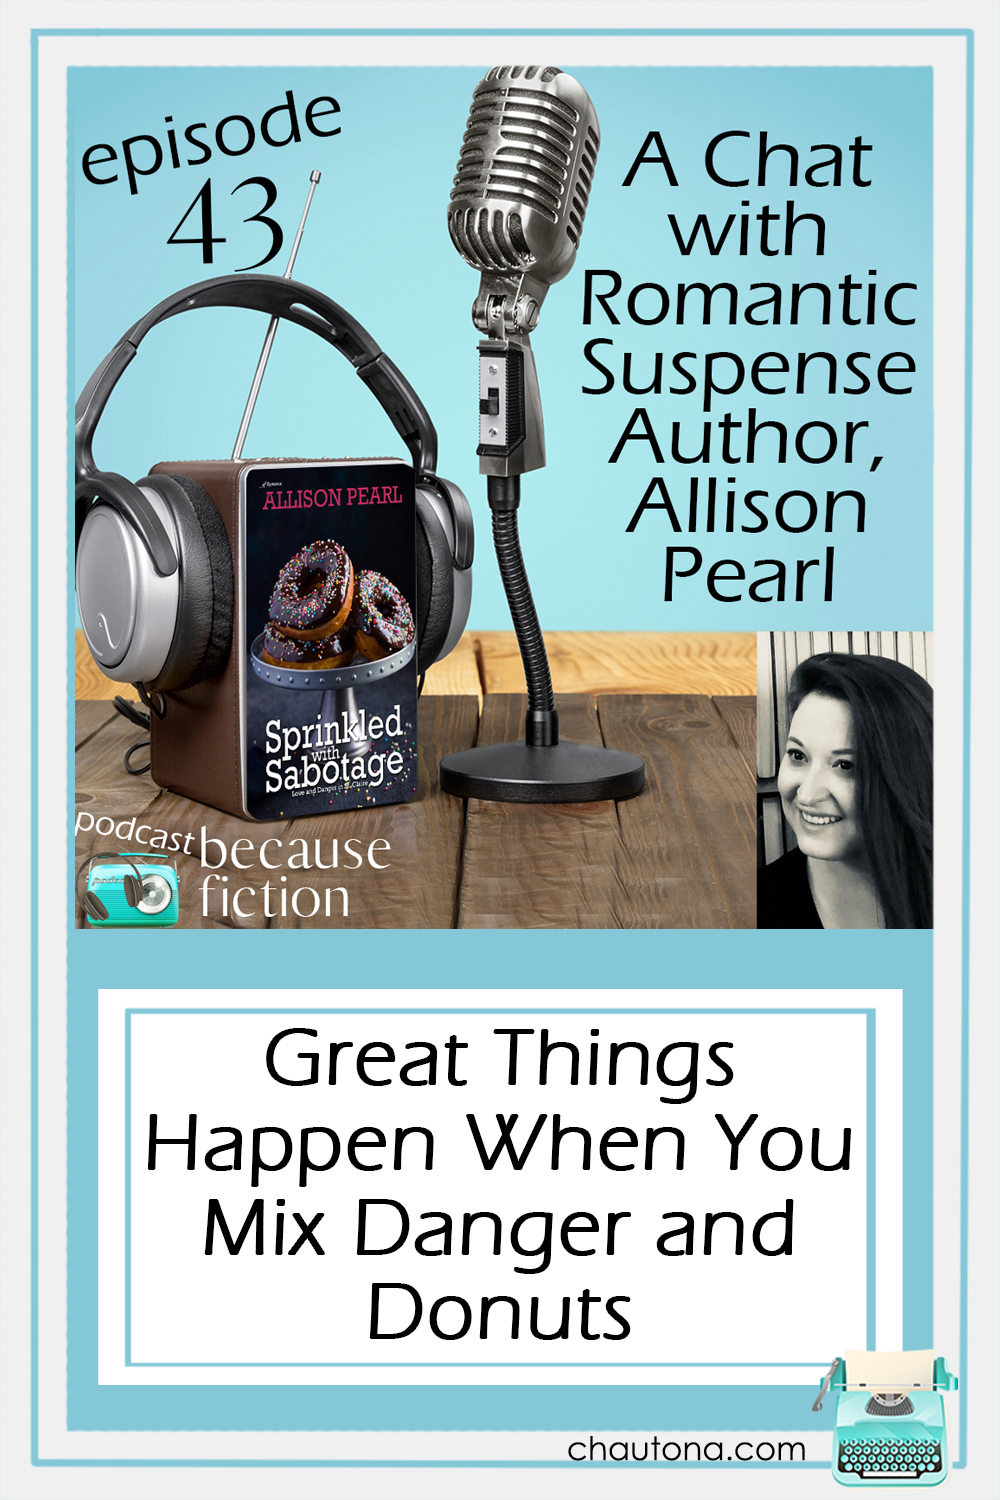 Suspense is a favorite genre, so chatting about it with Allison Pearl was delightful although it did mean I had to stop reading her book. via @chautonahavig